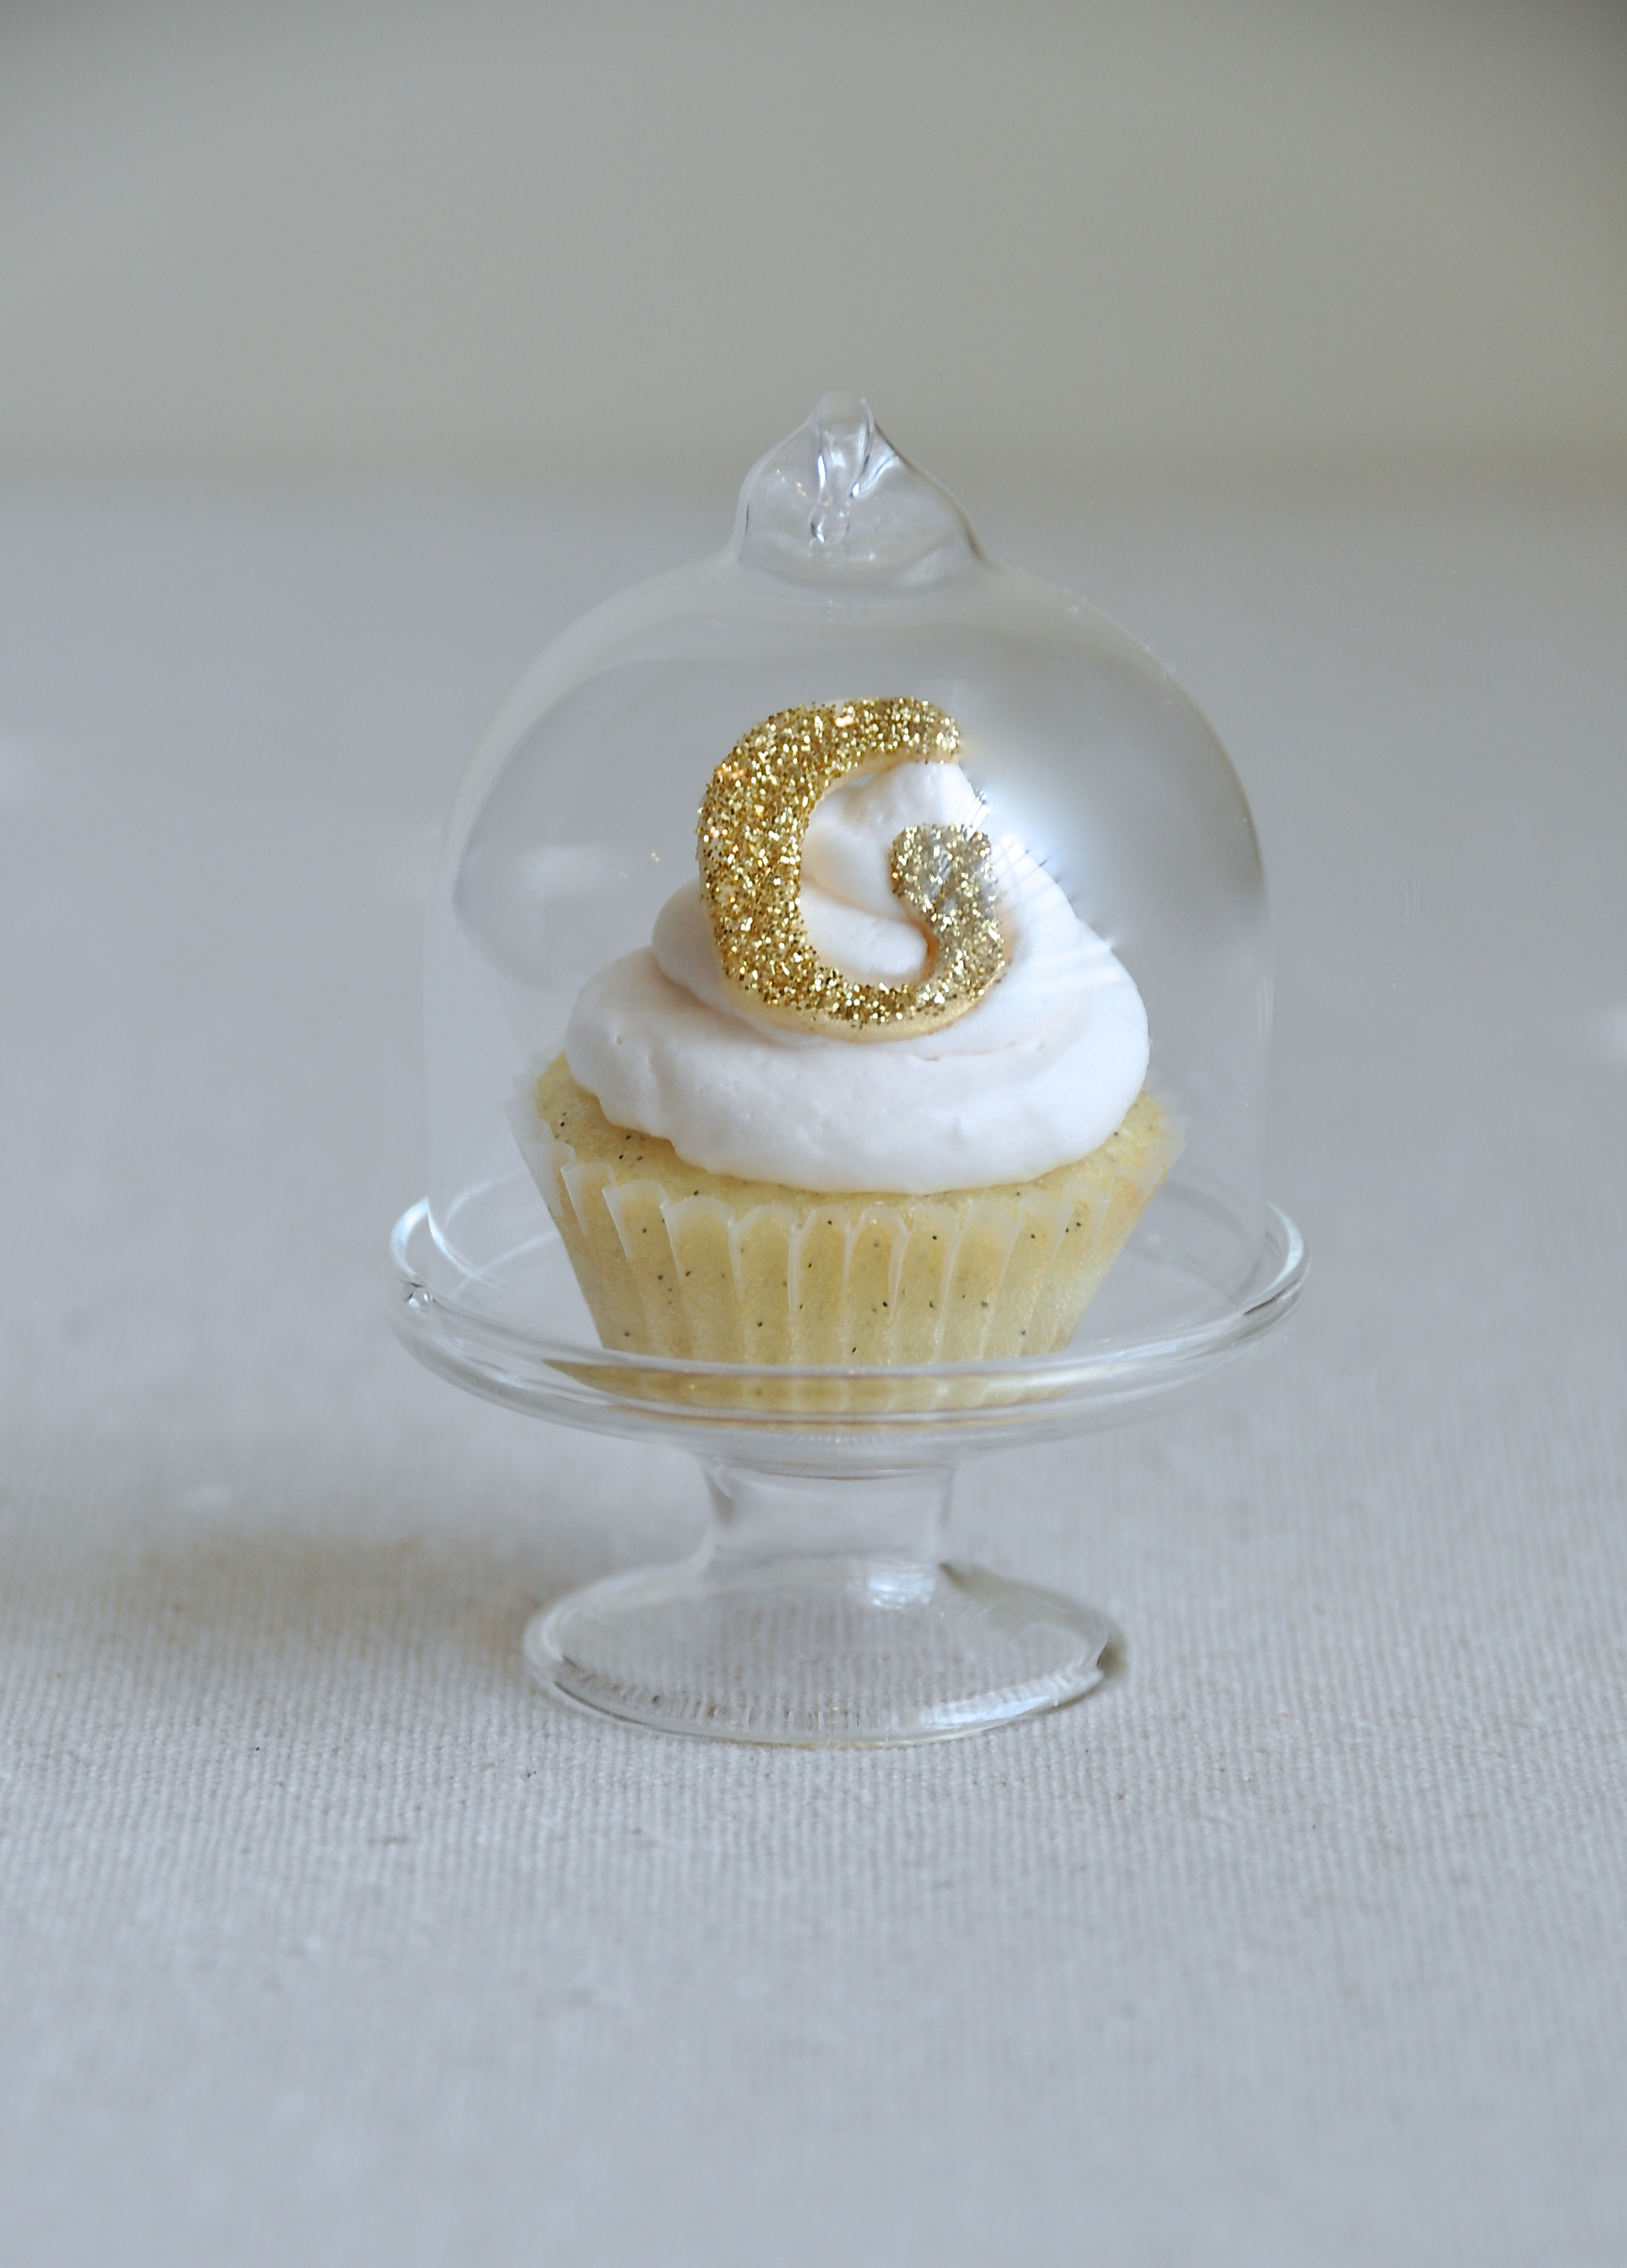 Custom Bite-Sized Wedding Cupcakes in Mini Glass Cake Domes